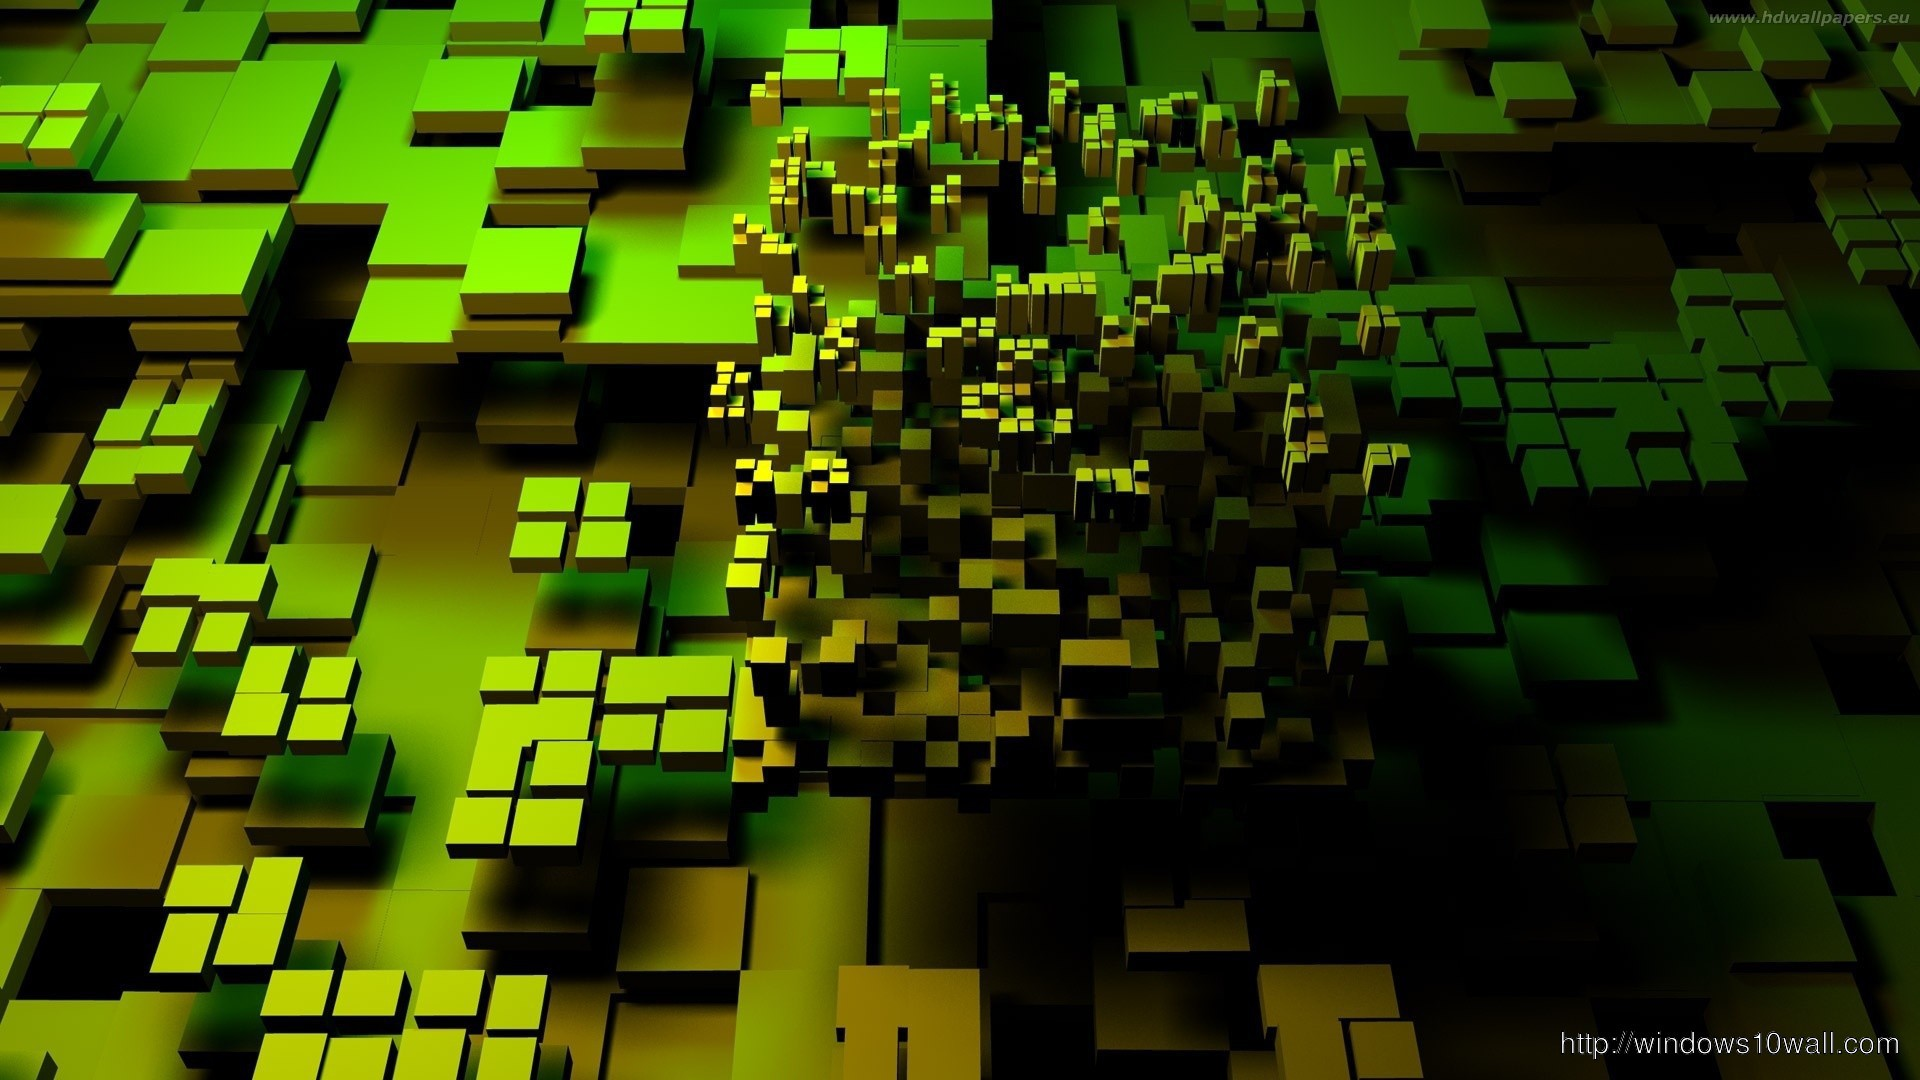 3d Puzzle 1080p Hd ⋆ Windows 10 Wallpapers